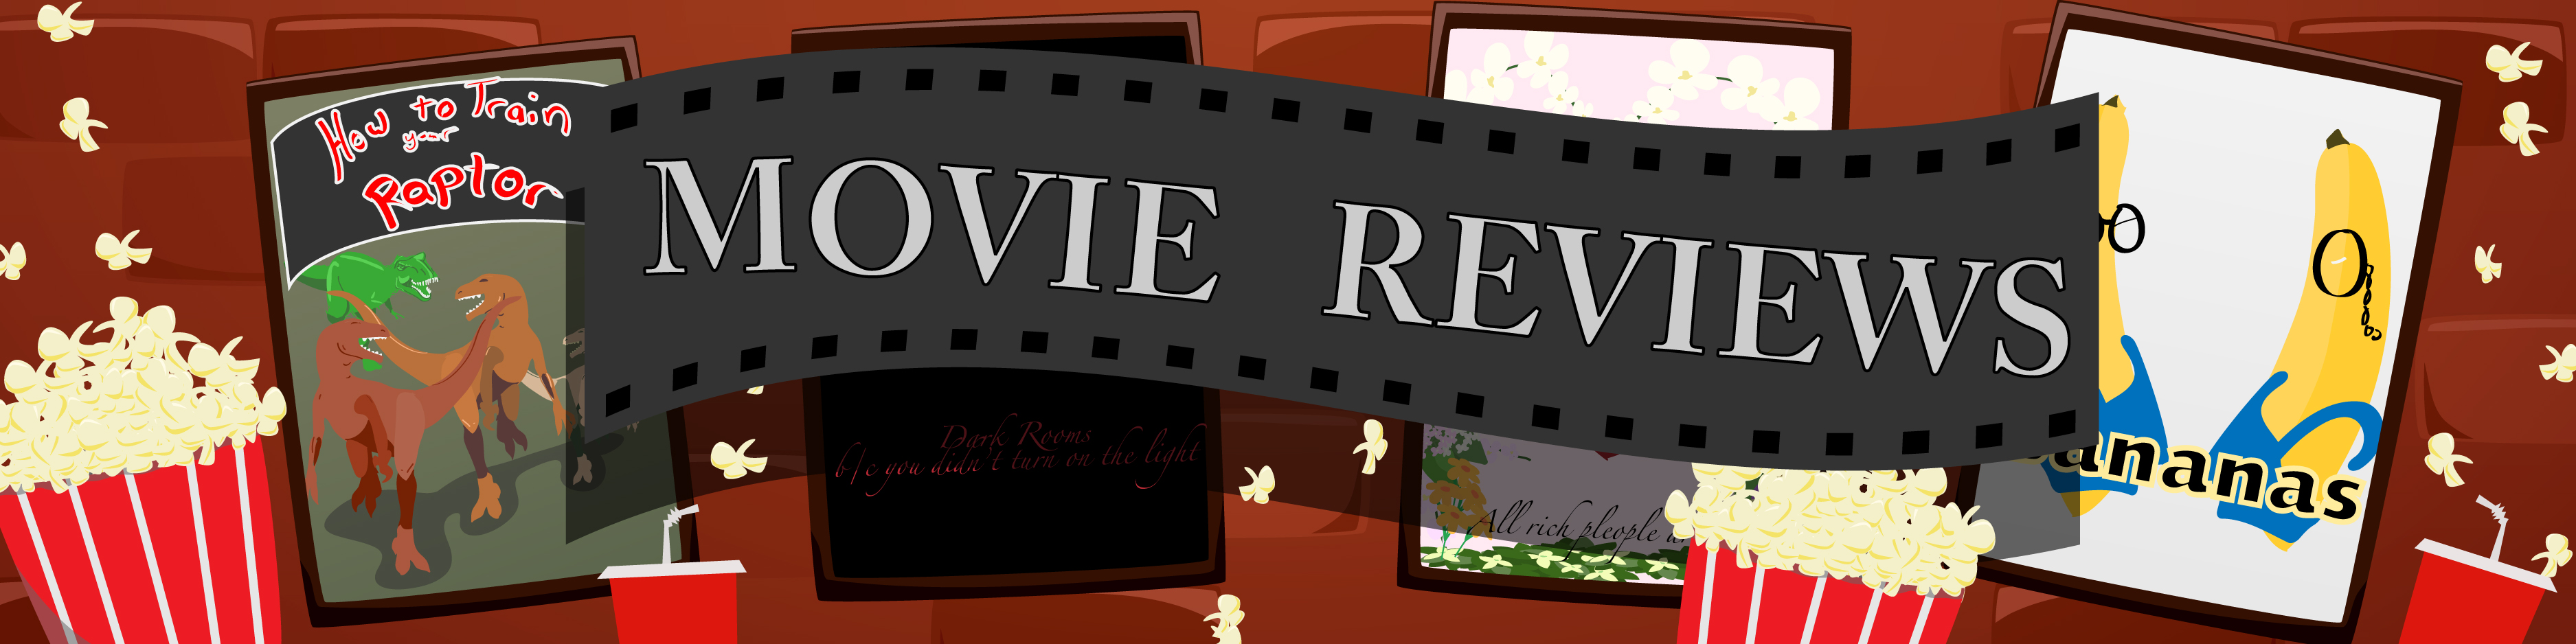 Movie revues